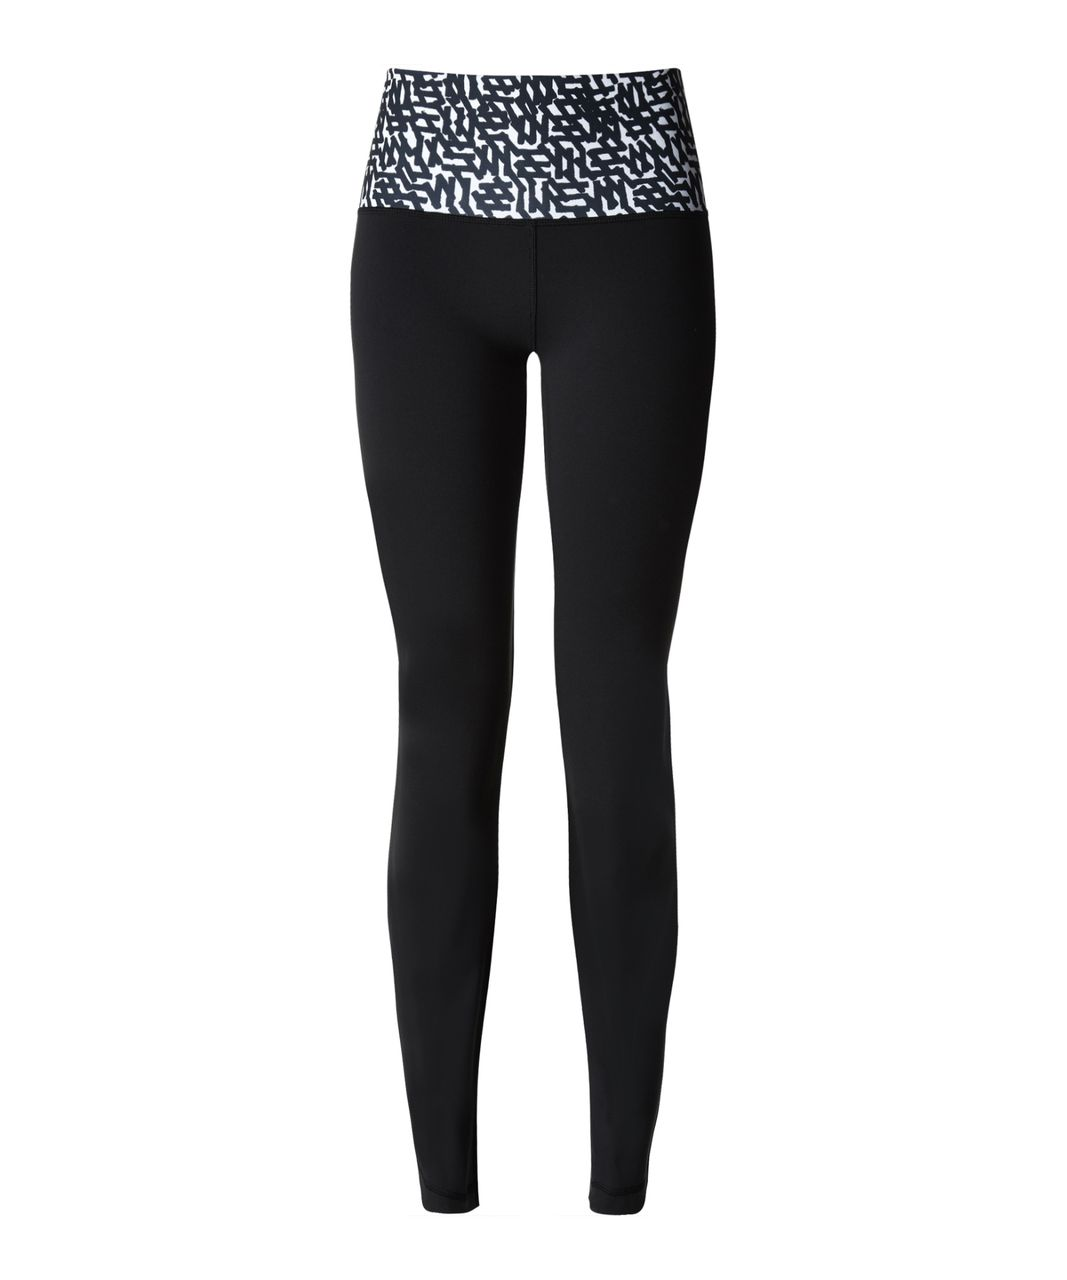 Lululemon Groove Pant II - Black / Net Pop White Black